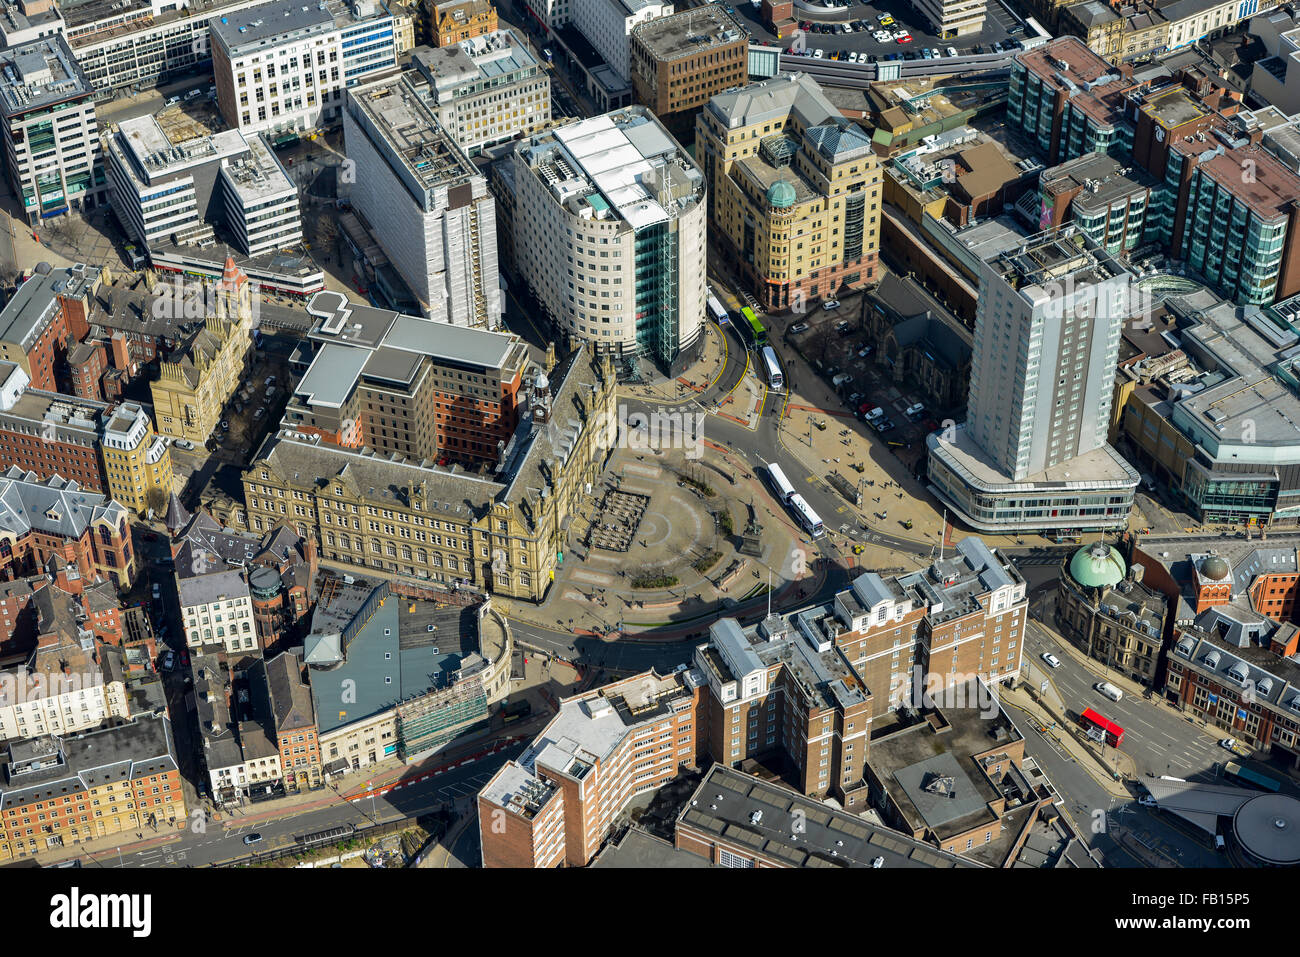 An aerial view of City Square in Leeds City Centre, West Yorkshire - Stock Image